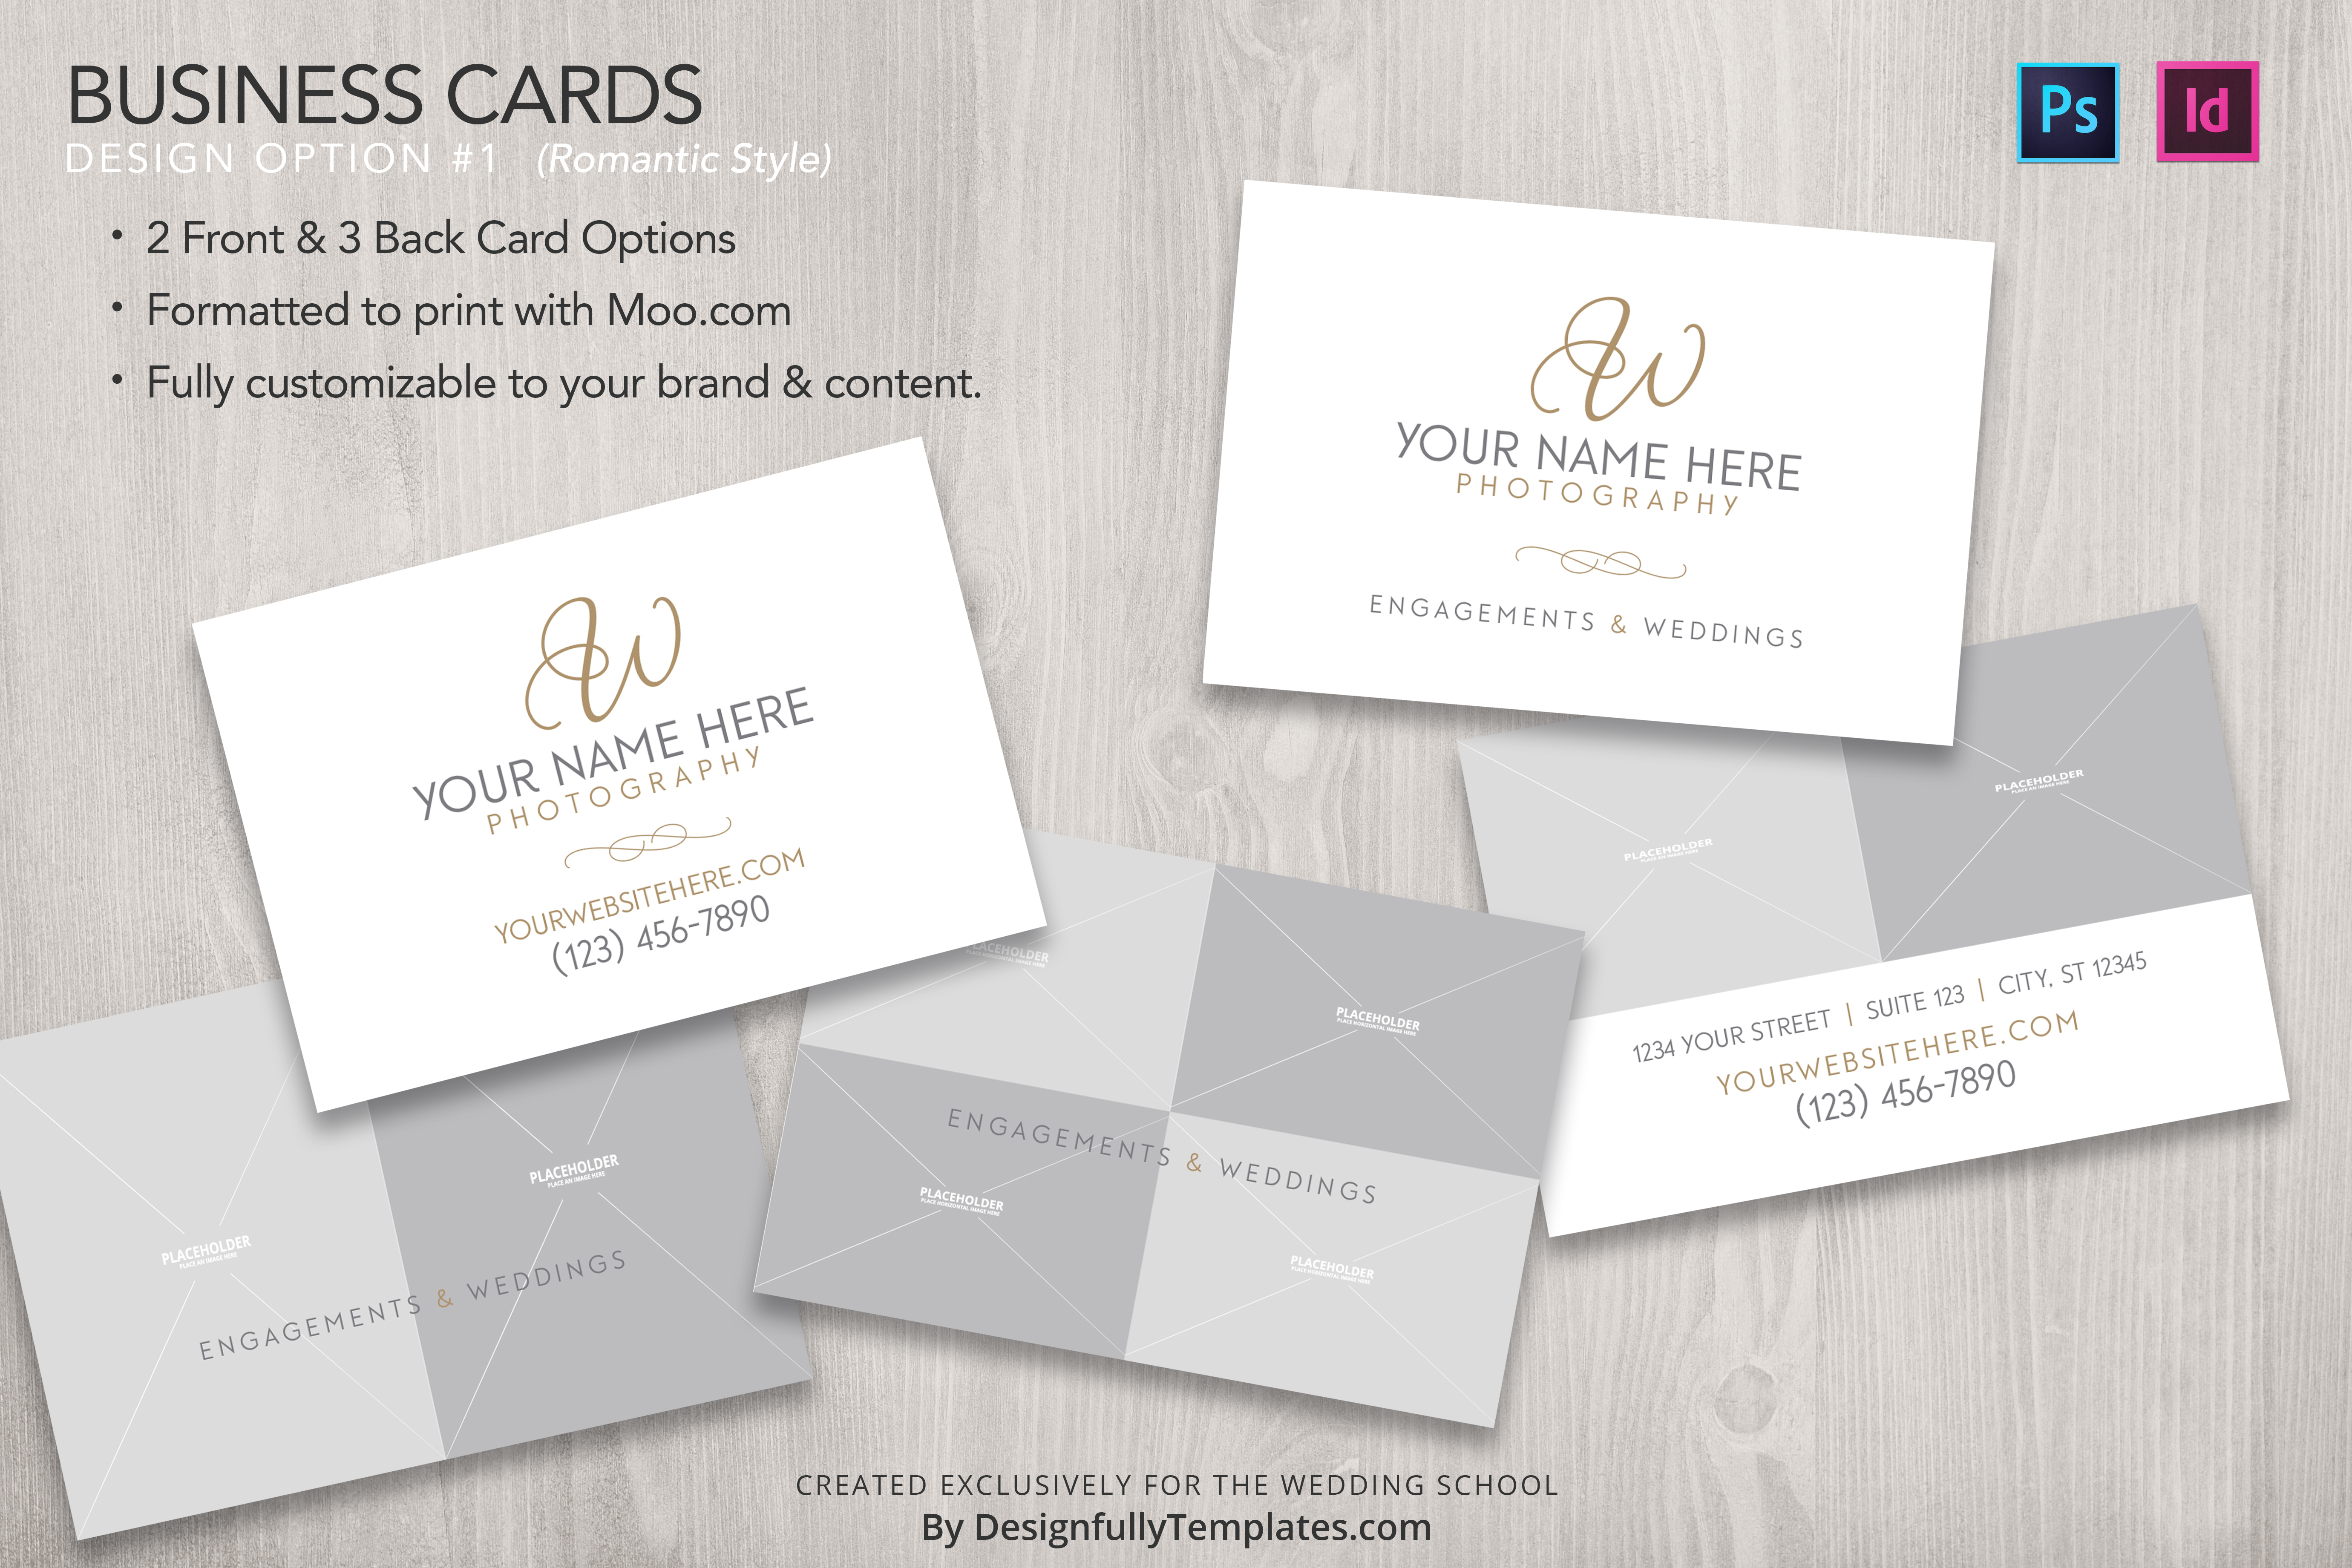 Templates for wedding photographers bundle the wedding school business cards for wedding photographers awesome templates for wedding photographers accmission Choice Image